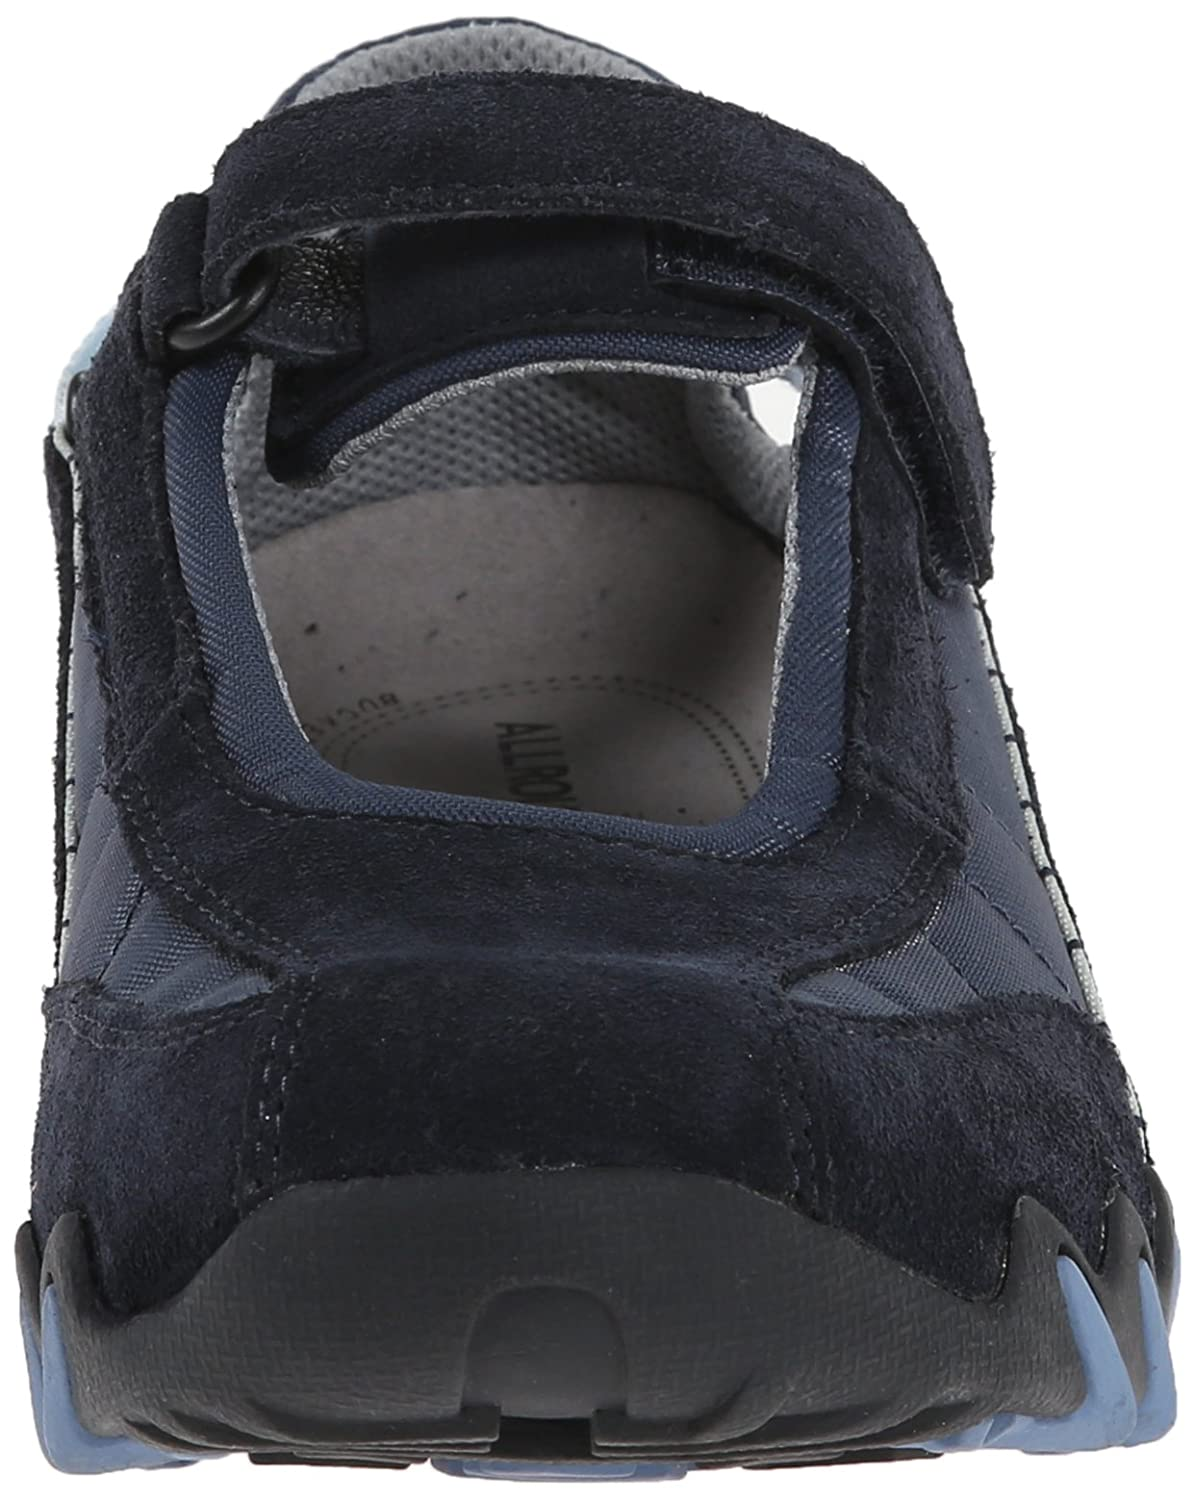 Men's/Women's Allrounder price by Mephisto Niro B000K7EAAE Walking Special price Allrounder Impeccable Various efcd1d